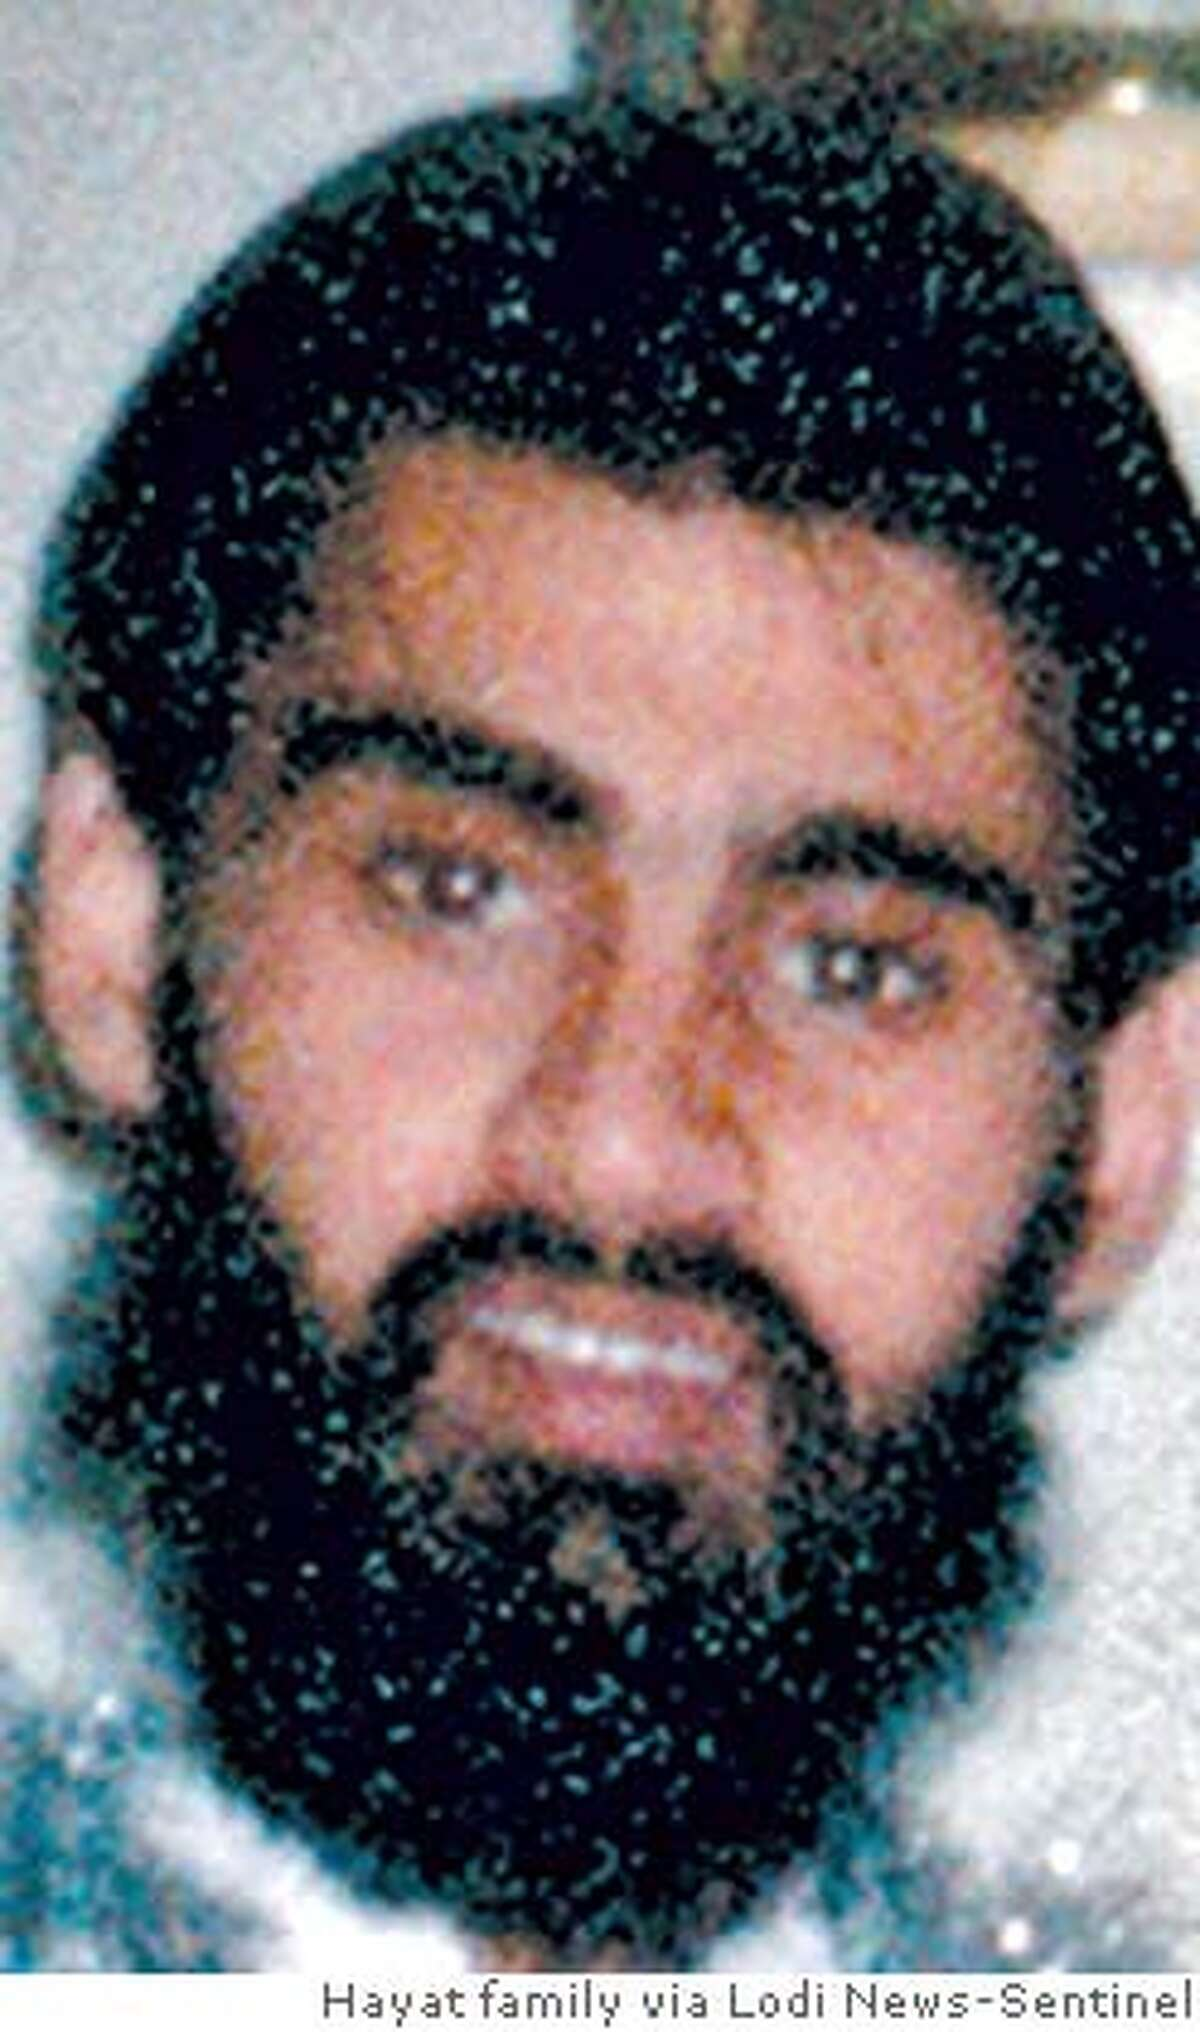 ** FILE ** This is an undated photo of Hamid Hayat provided by the Hayat family. Hayat, already being held on a terror-related charge was indicted on a more serious allegation of providing material support to terrorists Thursday, Sept. 22, 2005, after he purportedly admitted attending an al-Qaida training camp in Pakistan. (AP Photo/Hayat family via Lodi News-Sentinel, FILE) Ran on: 09-23-2005 U.S. Attorney McGregor Scott (above) said, Whatever was taking shape in Lodi isnt going to happen now. Ran on: 09-24-2005 Umer Hayat Ran on: 09-27-2005 Umer Hayat Ran on: 09-27-2005 Umer HayatRan on: 02-17-2006 Defense attorney Wazhma Mojaddidi (left), the attorney for Hamid Hayat, and Johnny Griffin III (right), the attorney for Umer Hayat, arrive at U.S. District Court in Sacramento.Ran on: 02-17-2006 Hamid HayatRan on: 02-17-2006 Ran on: 02-17-2006 Defense attorney Wazhma Mojaddidi (left), the attorney for Hamid Hayat, and Johnny Griffin III (right), the attorney for Umer Hayat, arrive at U.S. District Court in Sacramento.Ran on: 02-17-2006 Ran on: 02-17-2006 Defense attorney Wazhma Mojaddidi (left), the attorney for Hamid Hayat, and Johnny Griffin III (right), the attorney for Umer Hayat, arrive at U.S. District Court in Sacramento.Ran on: 02-17-2006 Hamid HayatRan on: 02-17-2006 Defense attorney Wazhma Mojaddidi (left), the attorney for Hamid Hayat, and Johnny Griffin III (right), the attorney for Umer Hayat, arrive at U.S. District Court in Sacramento.Ran on: 02-22-2006 At the trial of Hamid Hayat, prosecutors wouldnt comment on discrepancies in his confession.Ran on: 03-03-2006 Hamid Hayat merely told an informant and the FBI what they wanted to hear, a de- fense lawyer implied.Ran on: 03-03-2006 Hamid Hayat merely told an informant and the FBI what they wanted to hear, a de- fense...